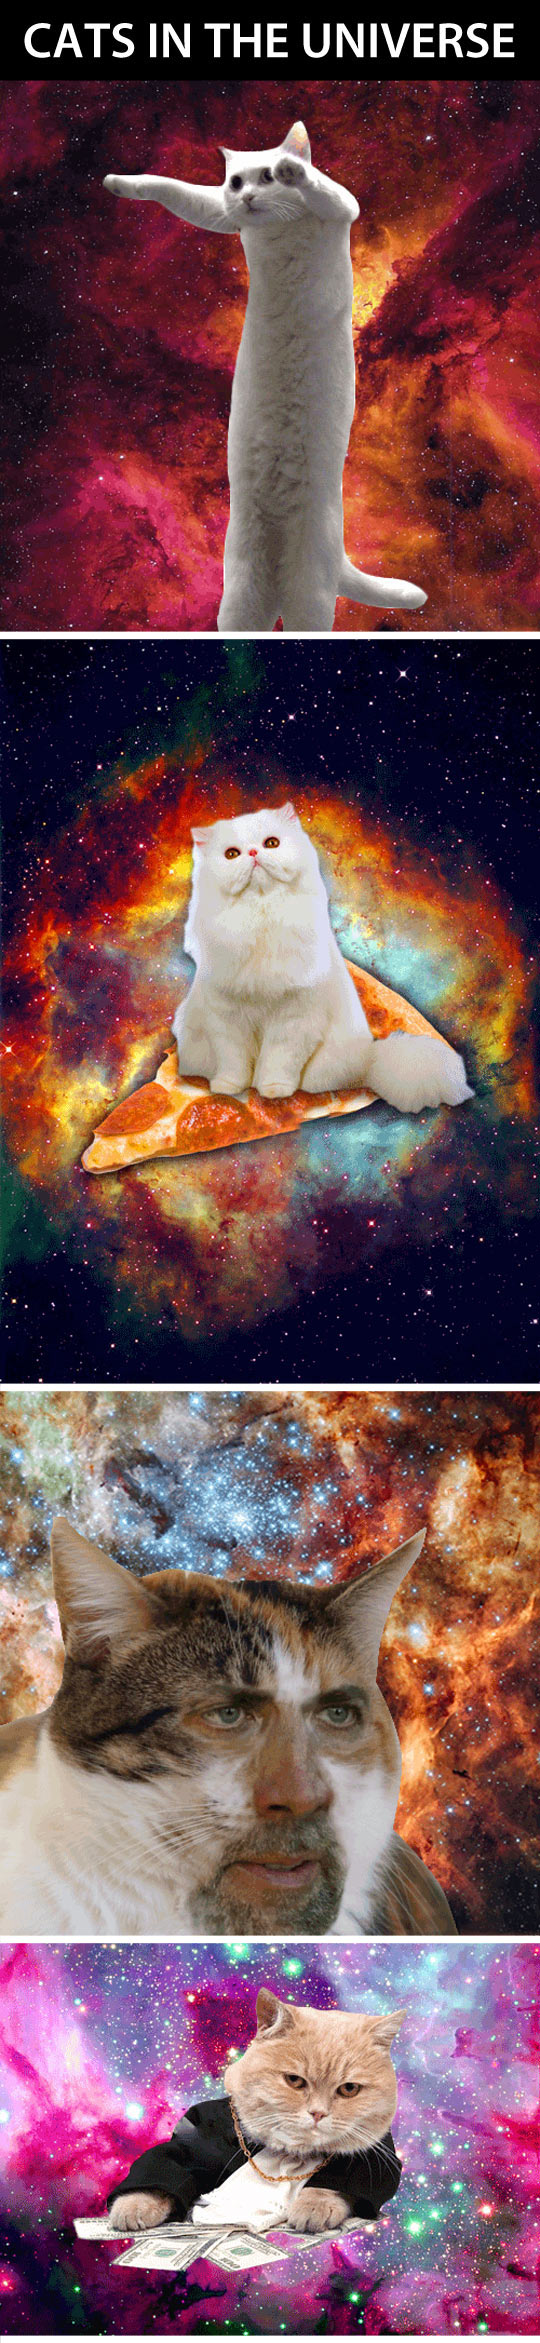 Pictures of majestic cats in space...